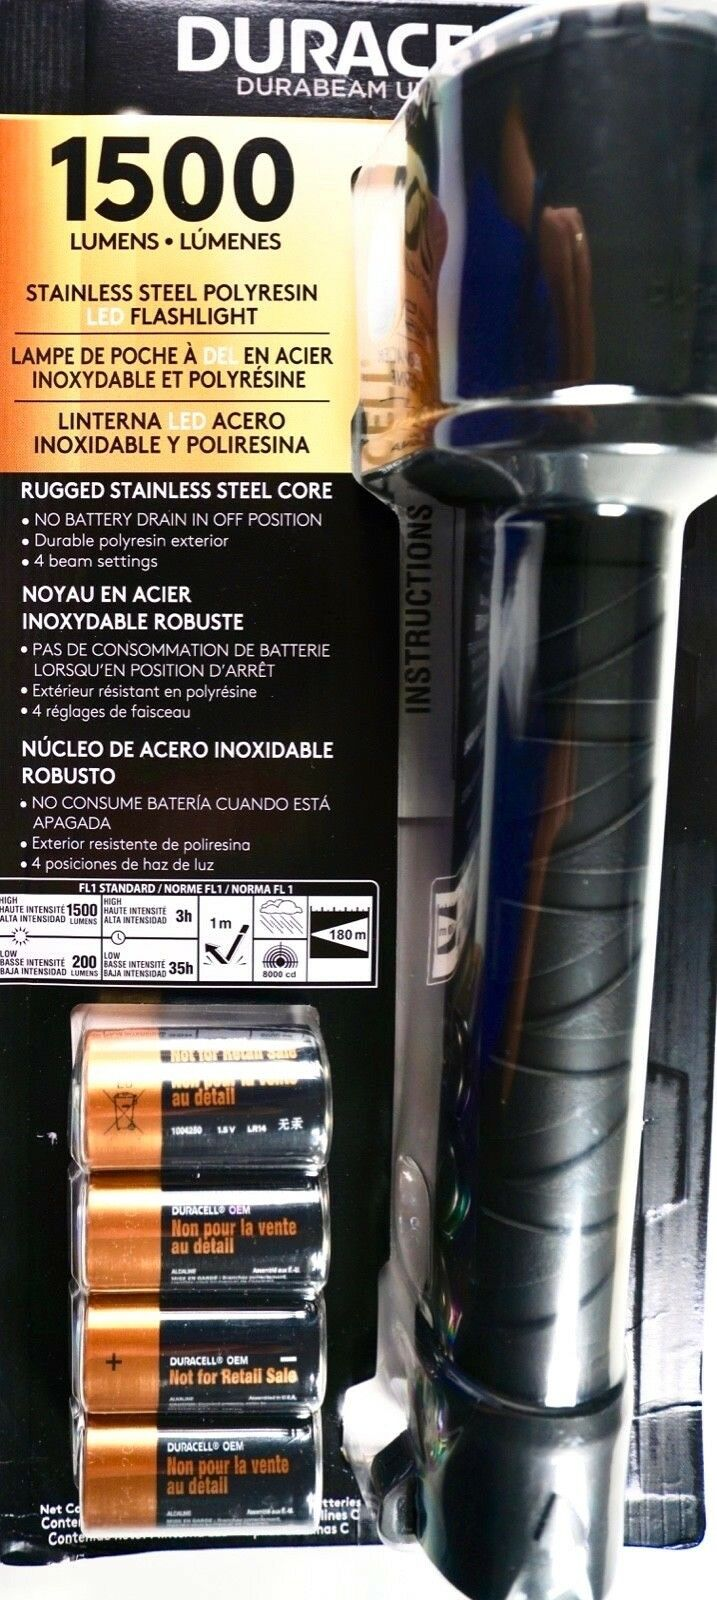 Duracell Durabeam 1,500 Lumens  LED Flashlight Stainless Steel, 4 Beam Settings  with 100% quality and %100 service